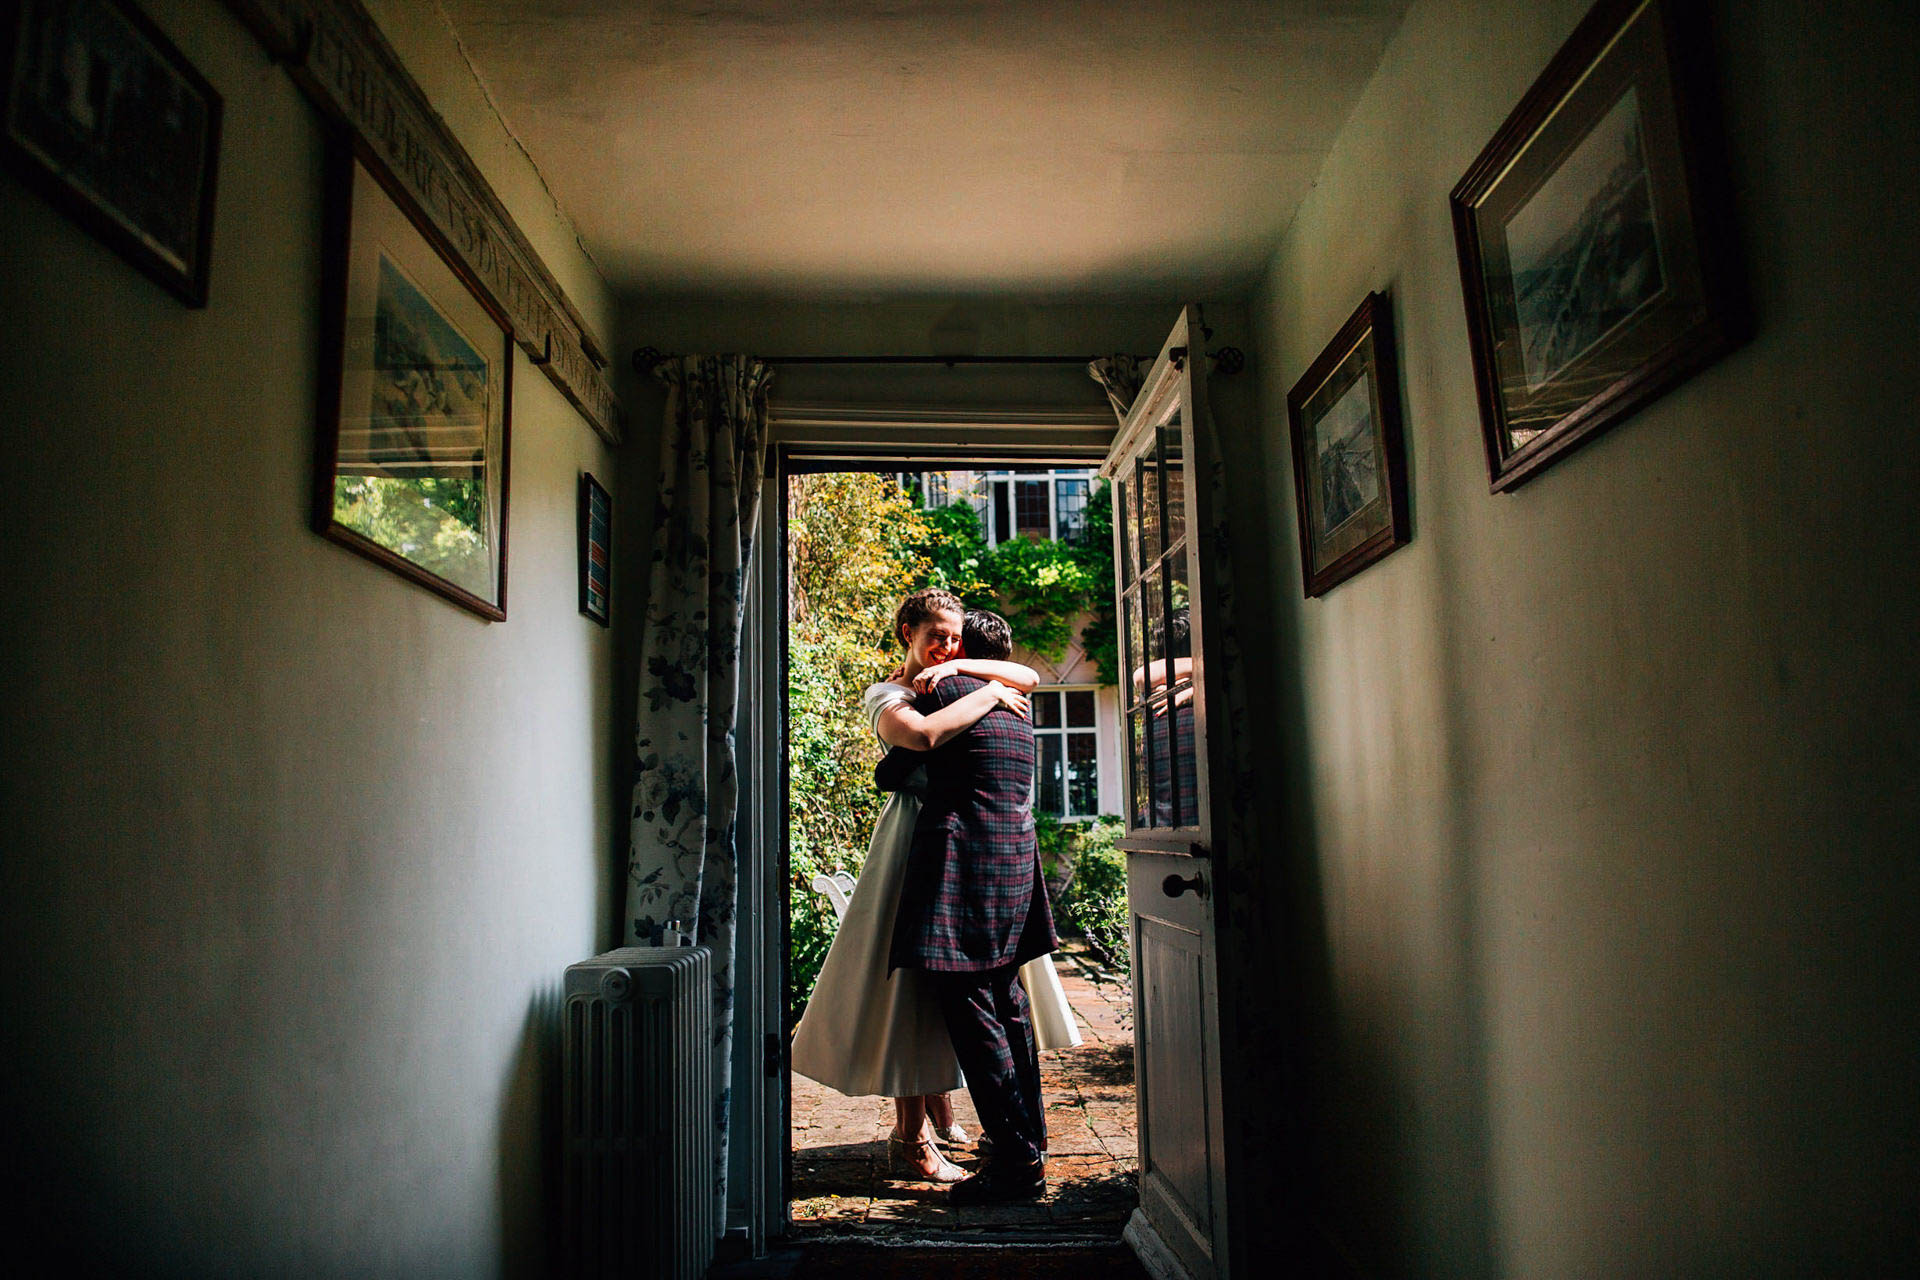 Best wedding photography 2016 - brides hugging in doorway of gorgeous house